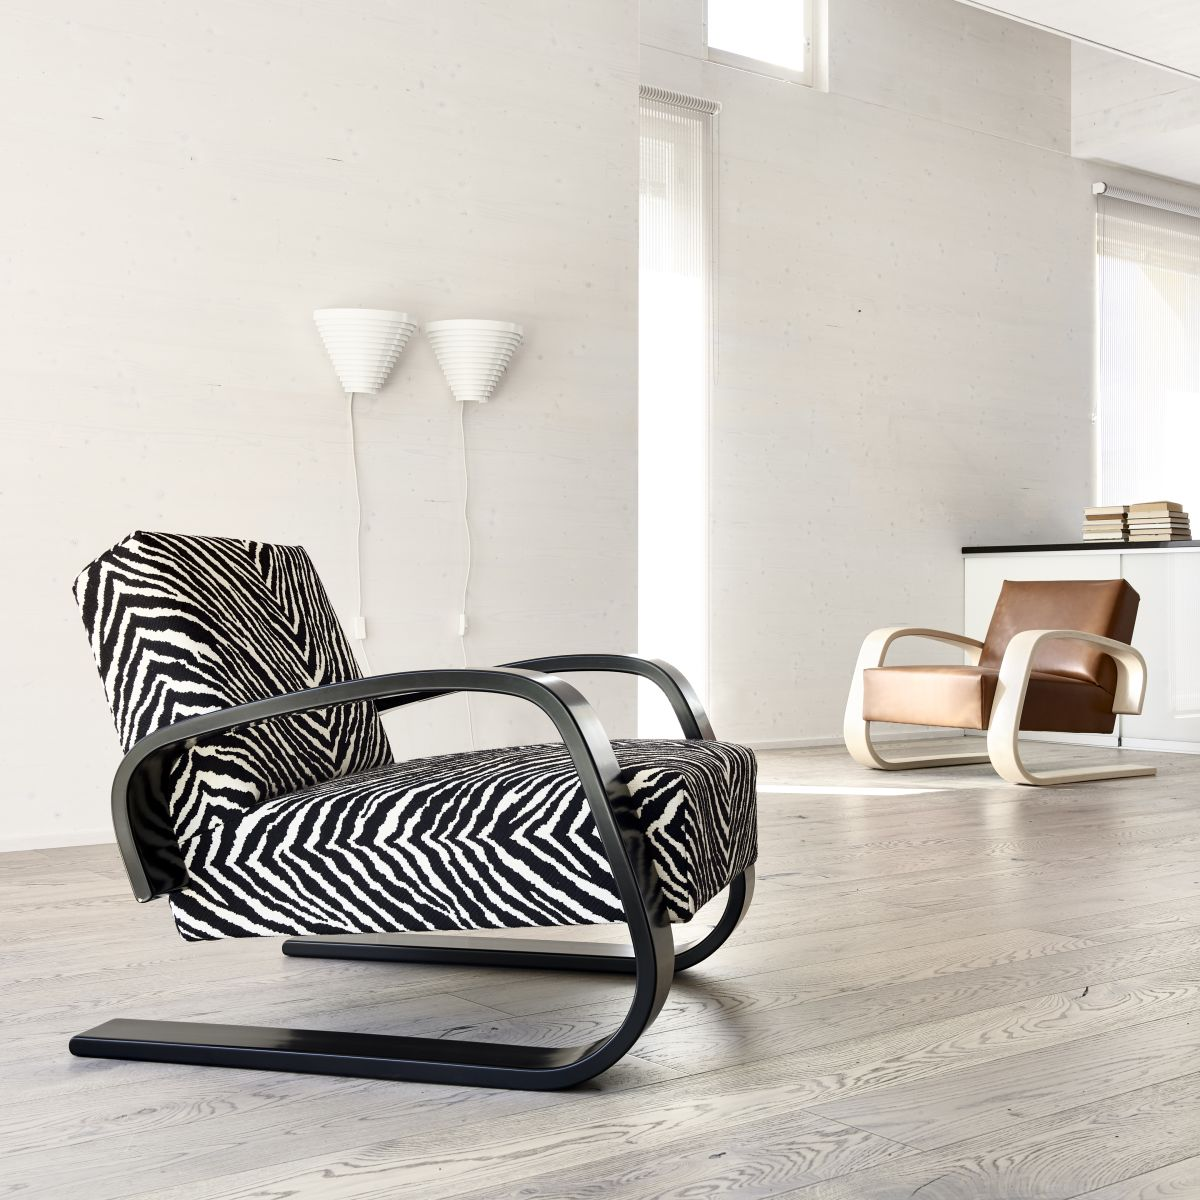 Artek_400_Armchair_A910_Wall_Light_Sameli_Rantanen_8